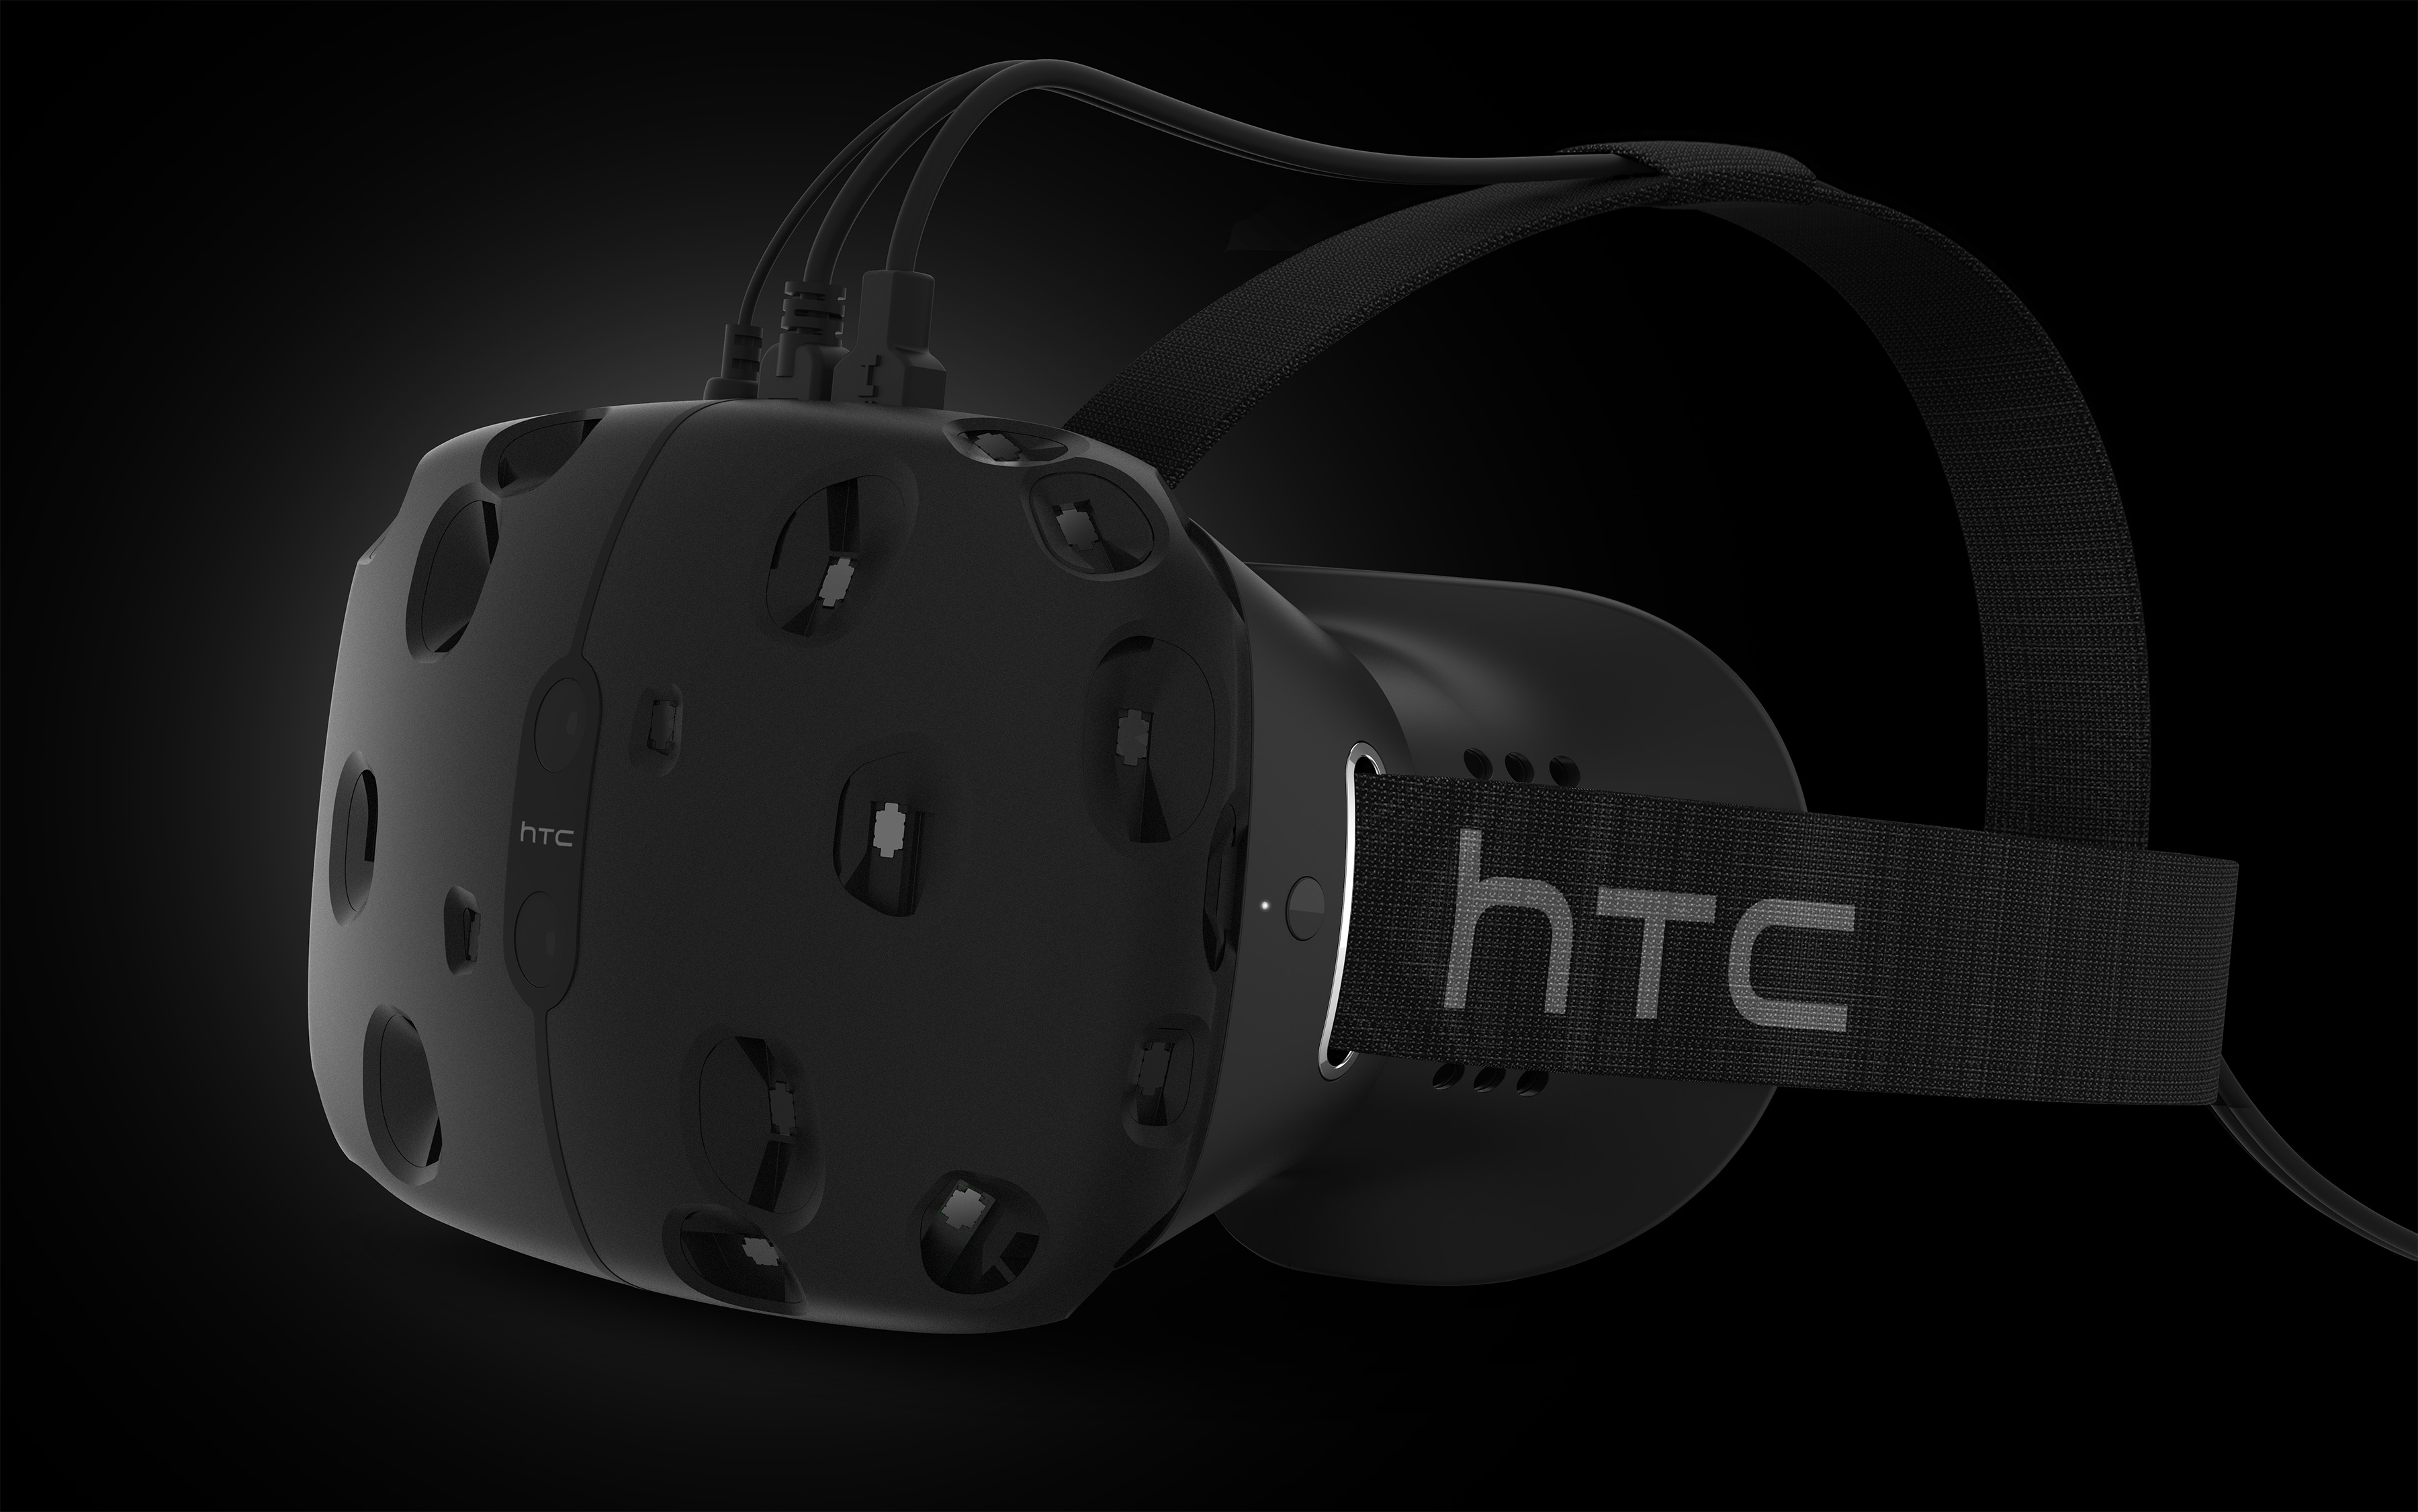 HTC's take on SteamVR.